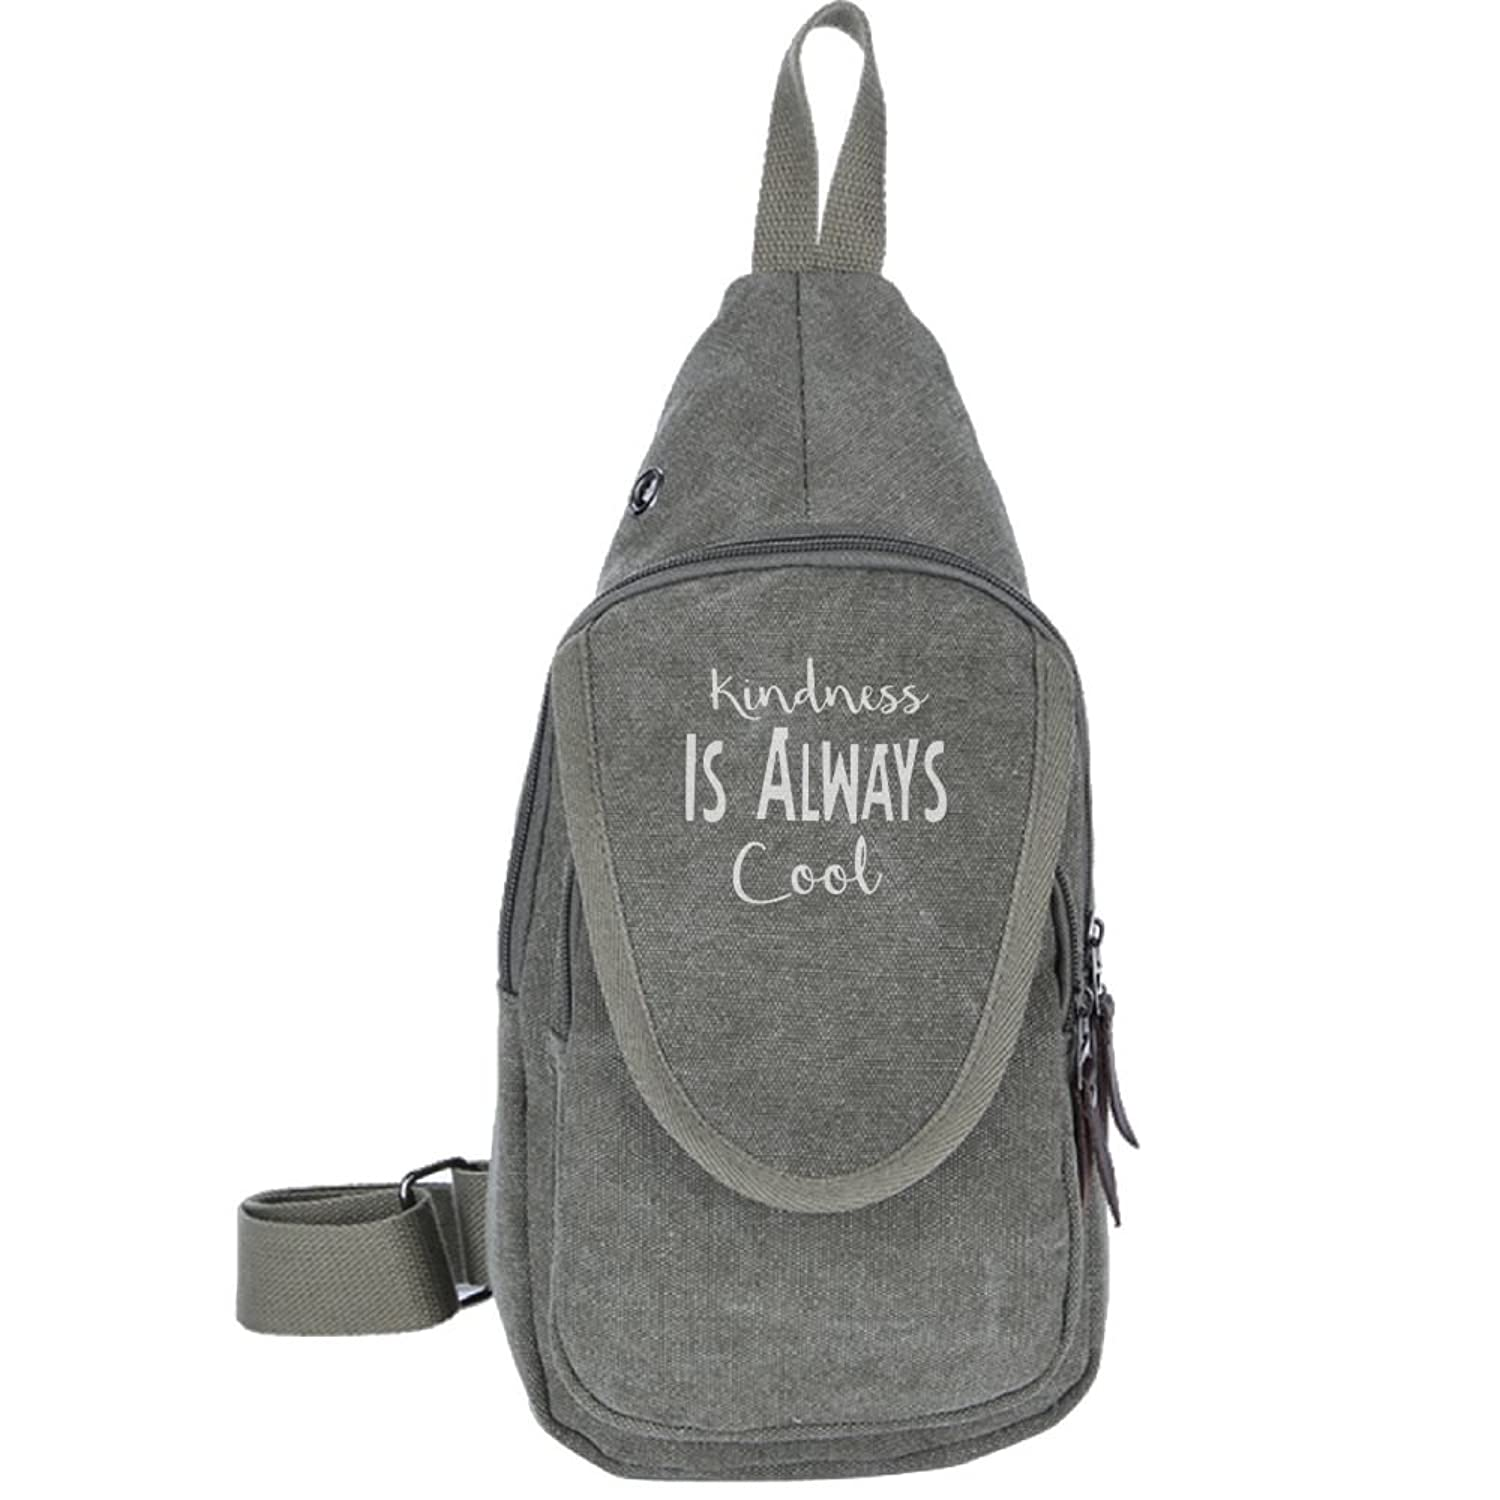 Kindness Is Always Cool Fashion Men s Bosom Bag Cross Body New Style Men  Canvas Chest Bags b2f05ee63f7c1